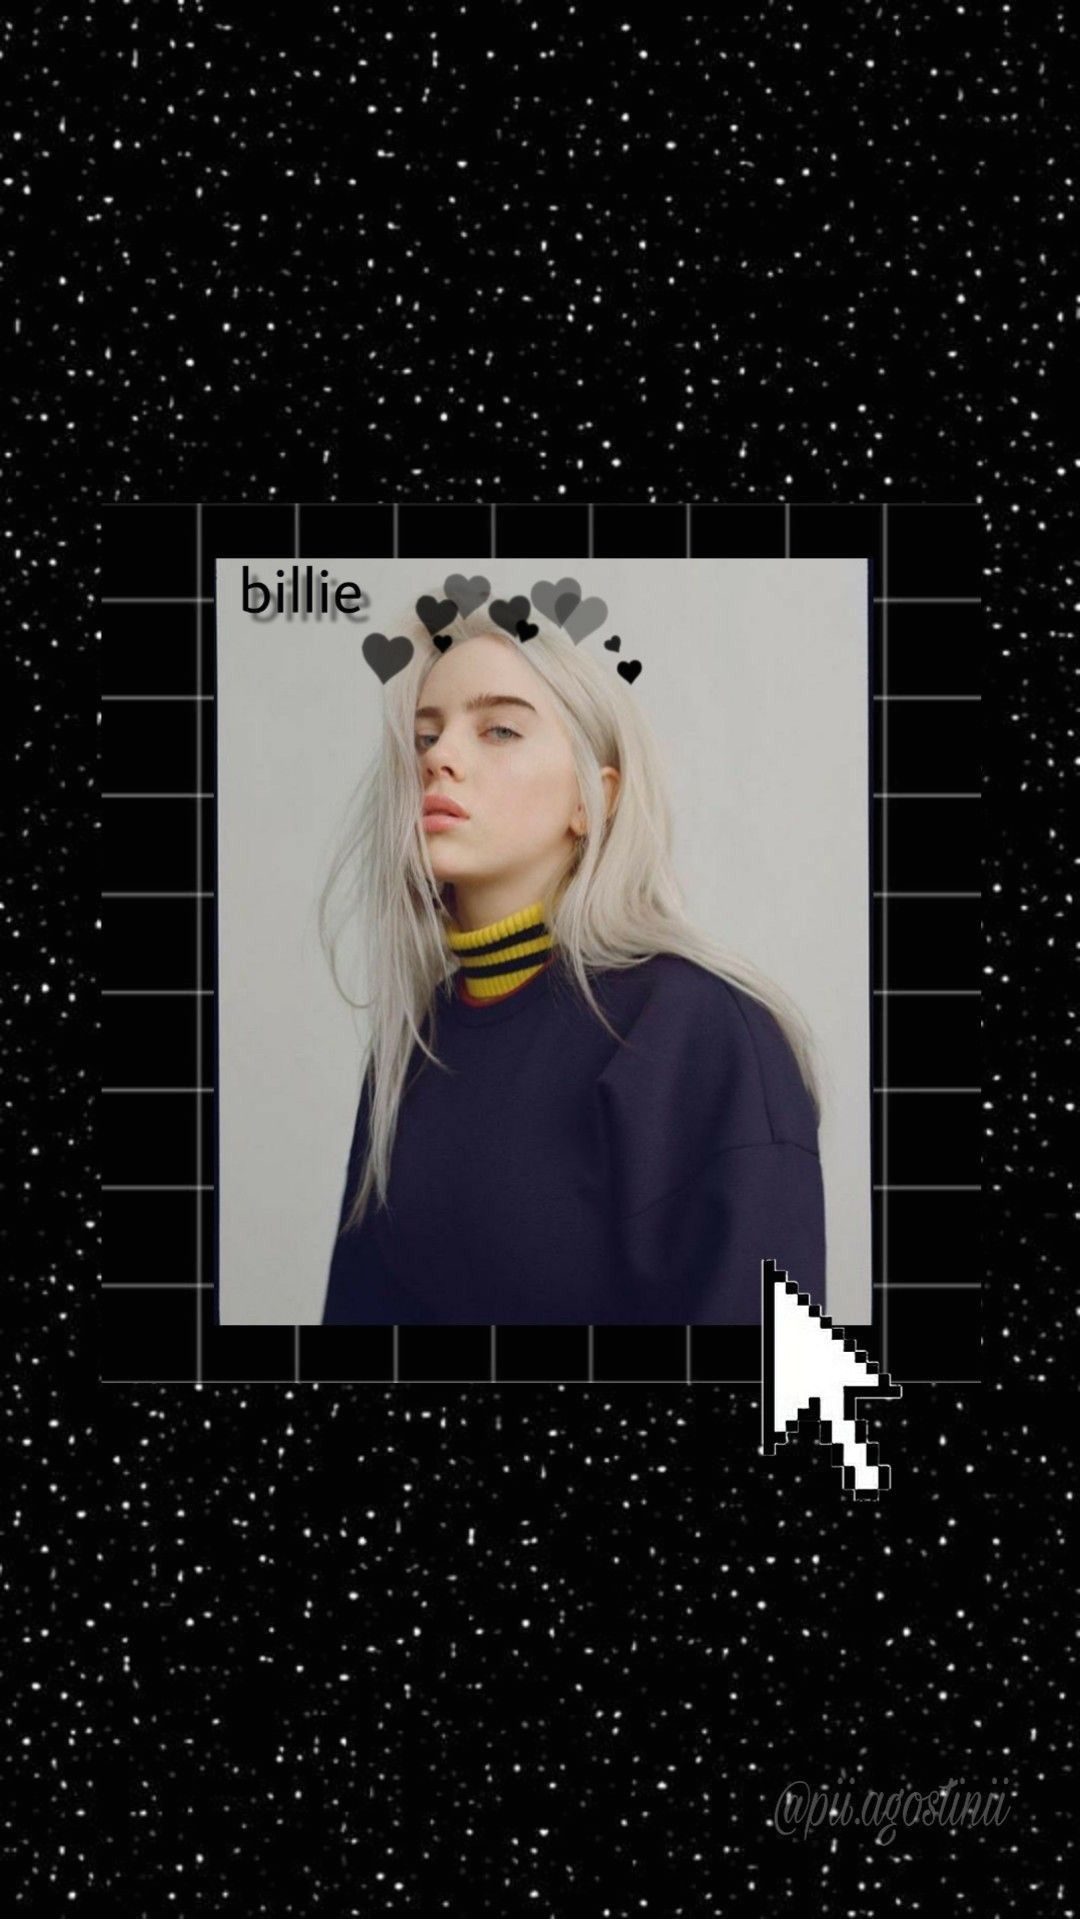 Billie Eilish Wallpaper Drawing Inspirational Billie Eilish Wallpaper Billie Eilish Billie Fotos De Desenhos Animados